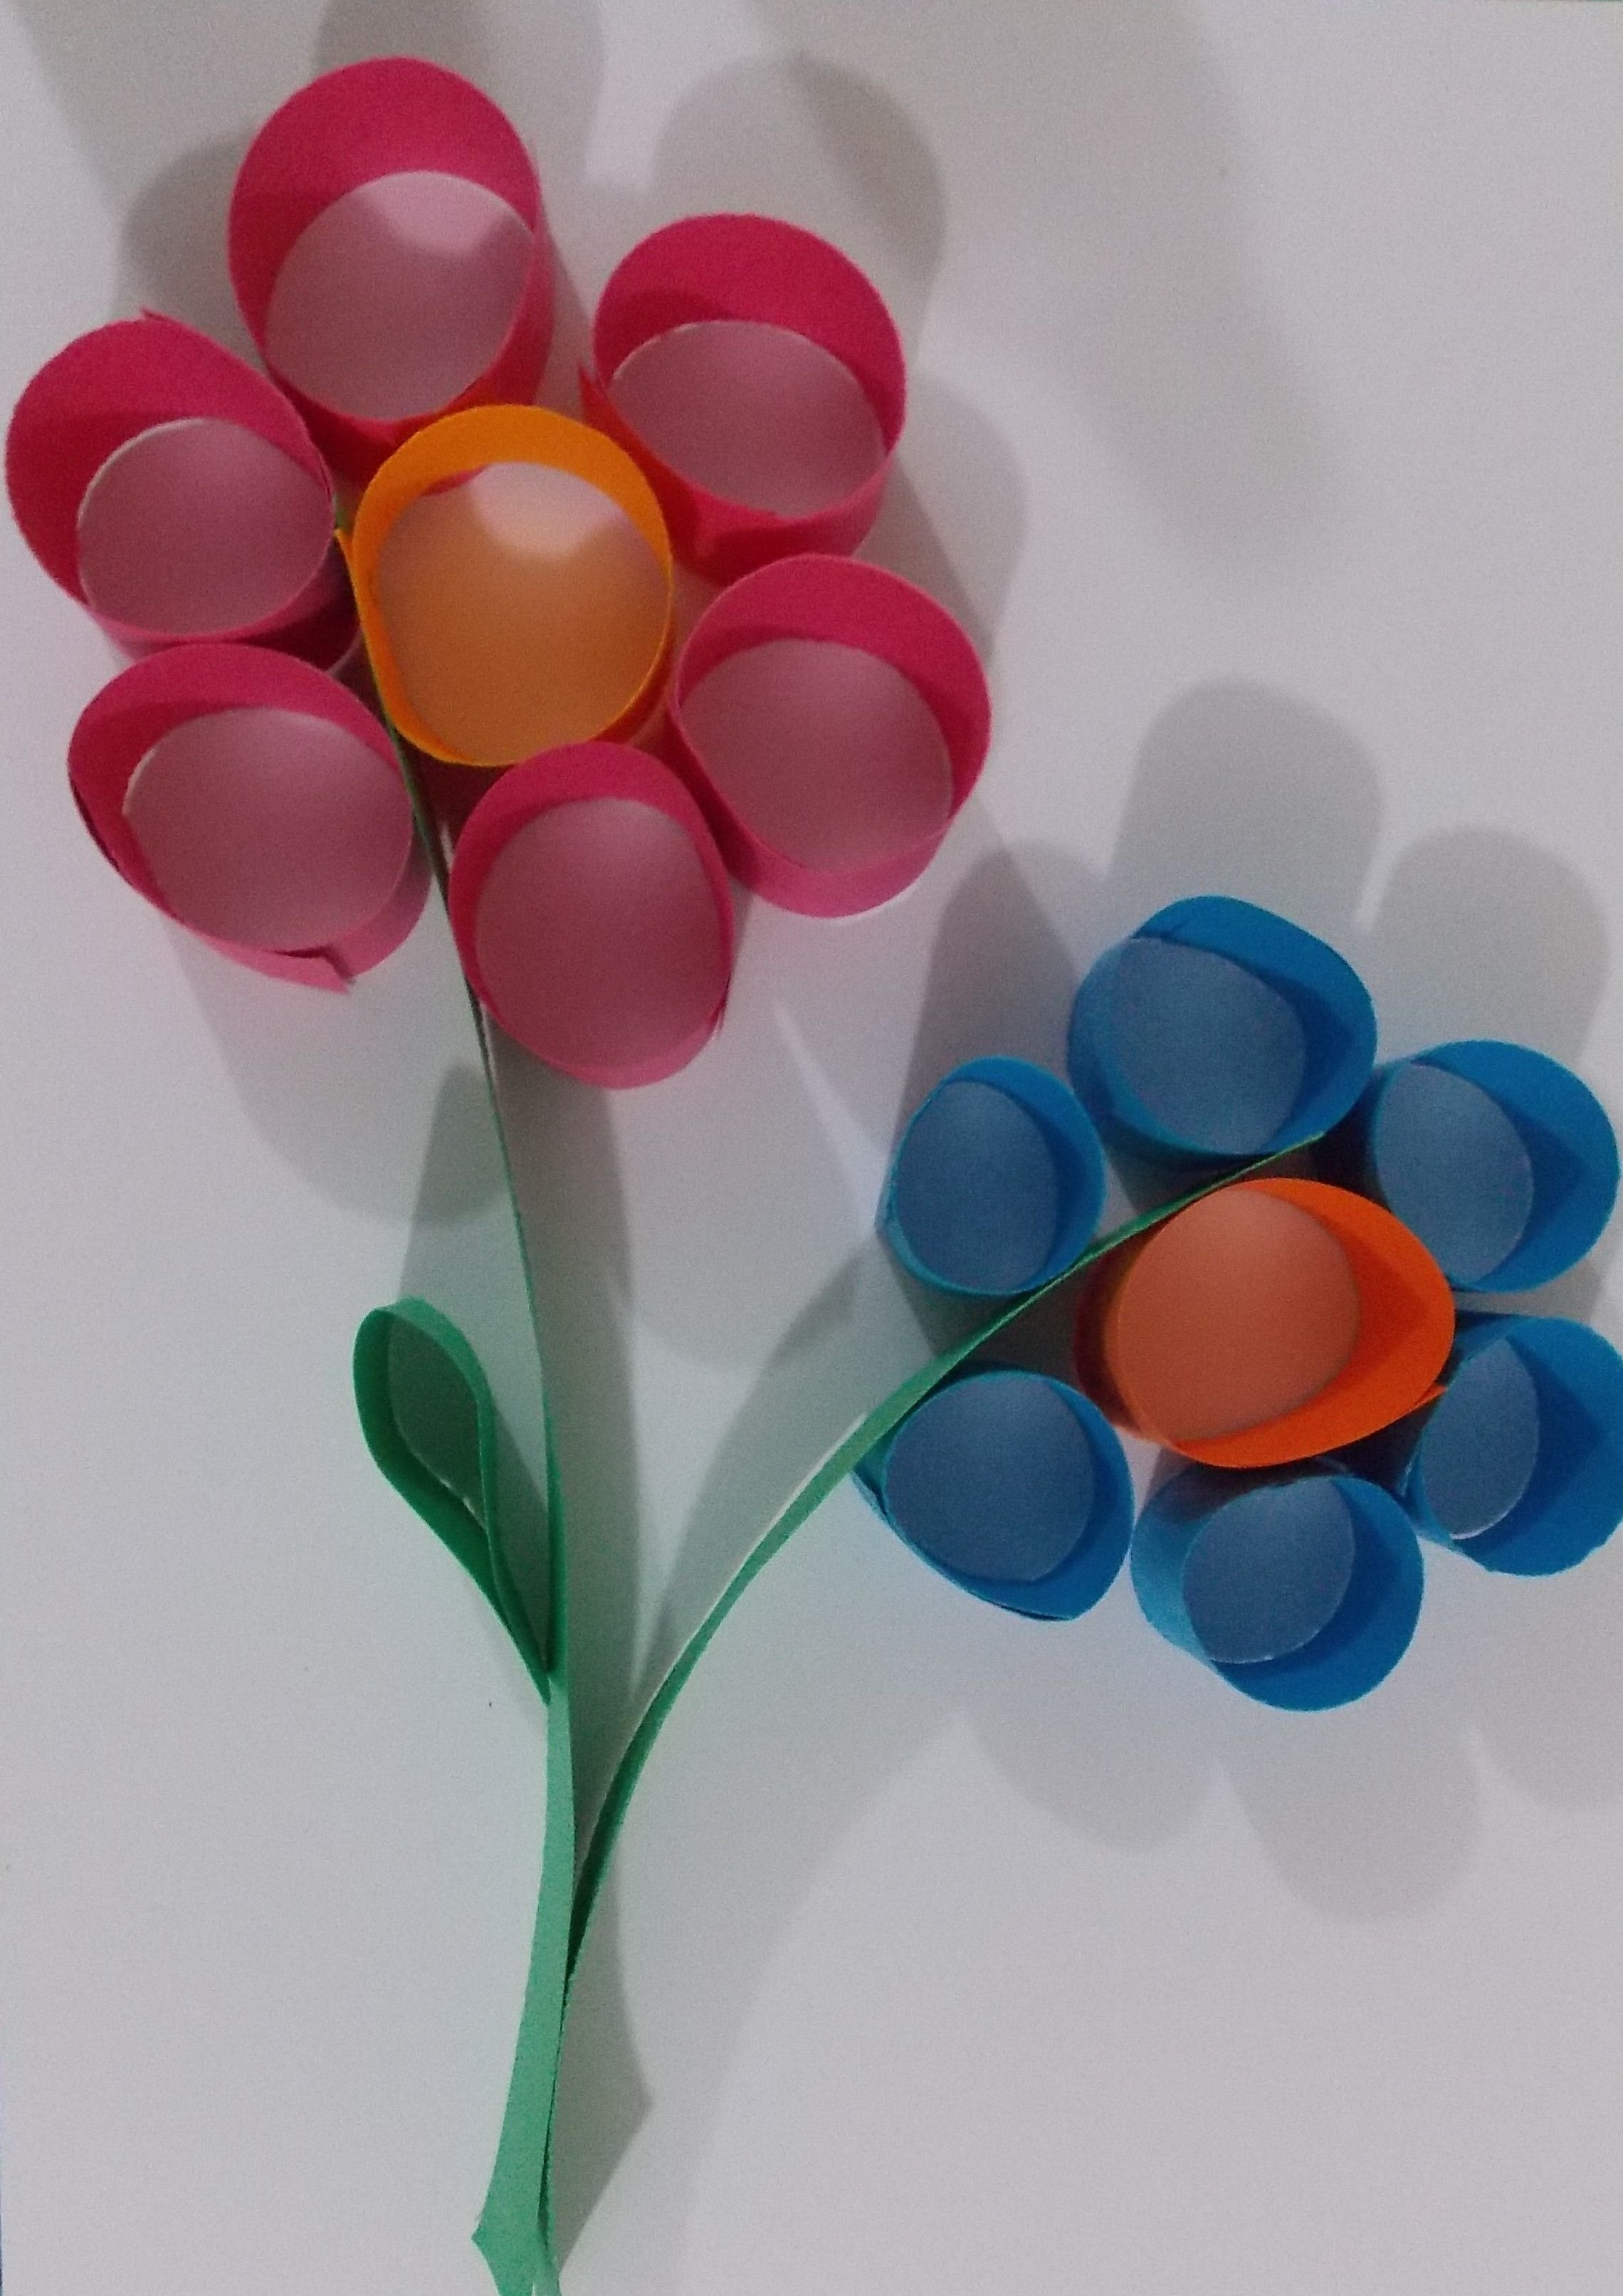 10 Gorgeous Craft Ideas With Construction Paper